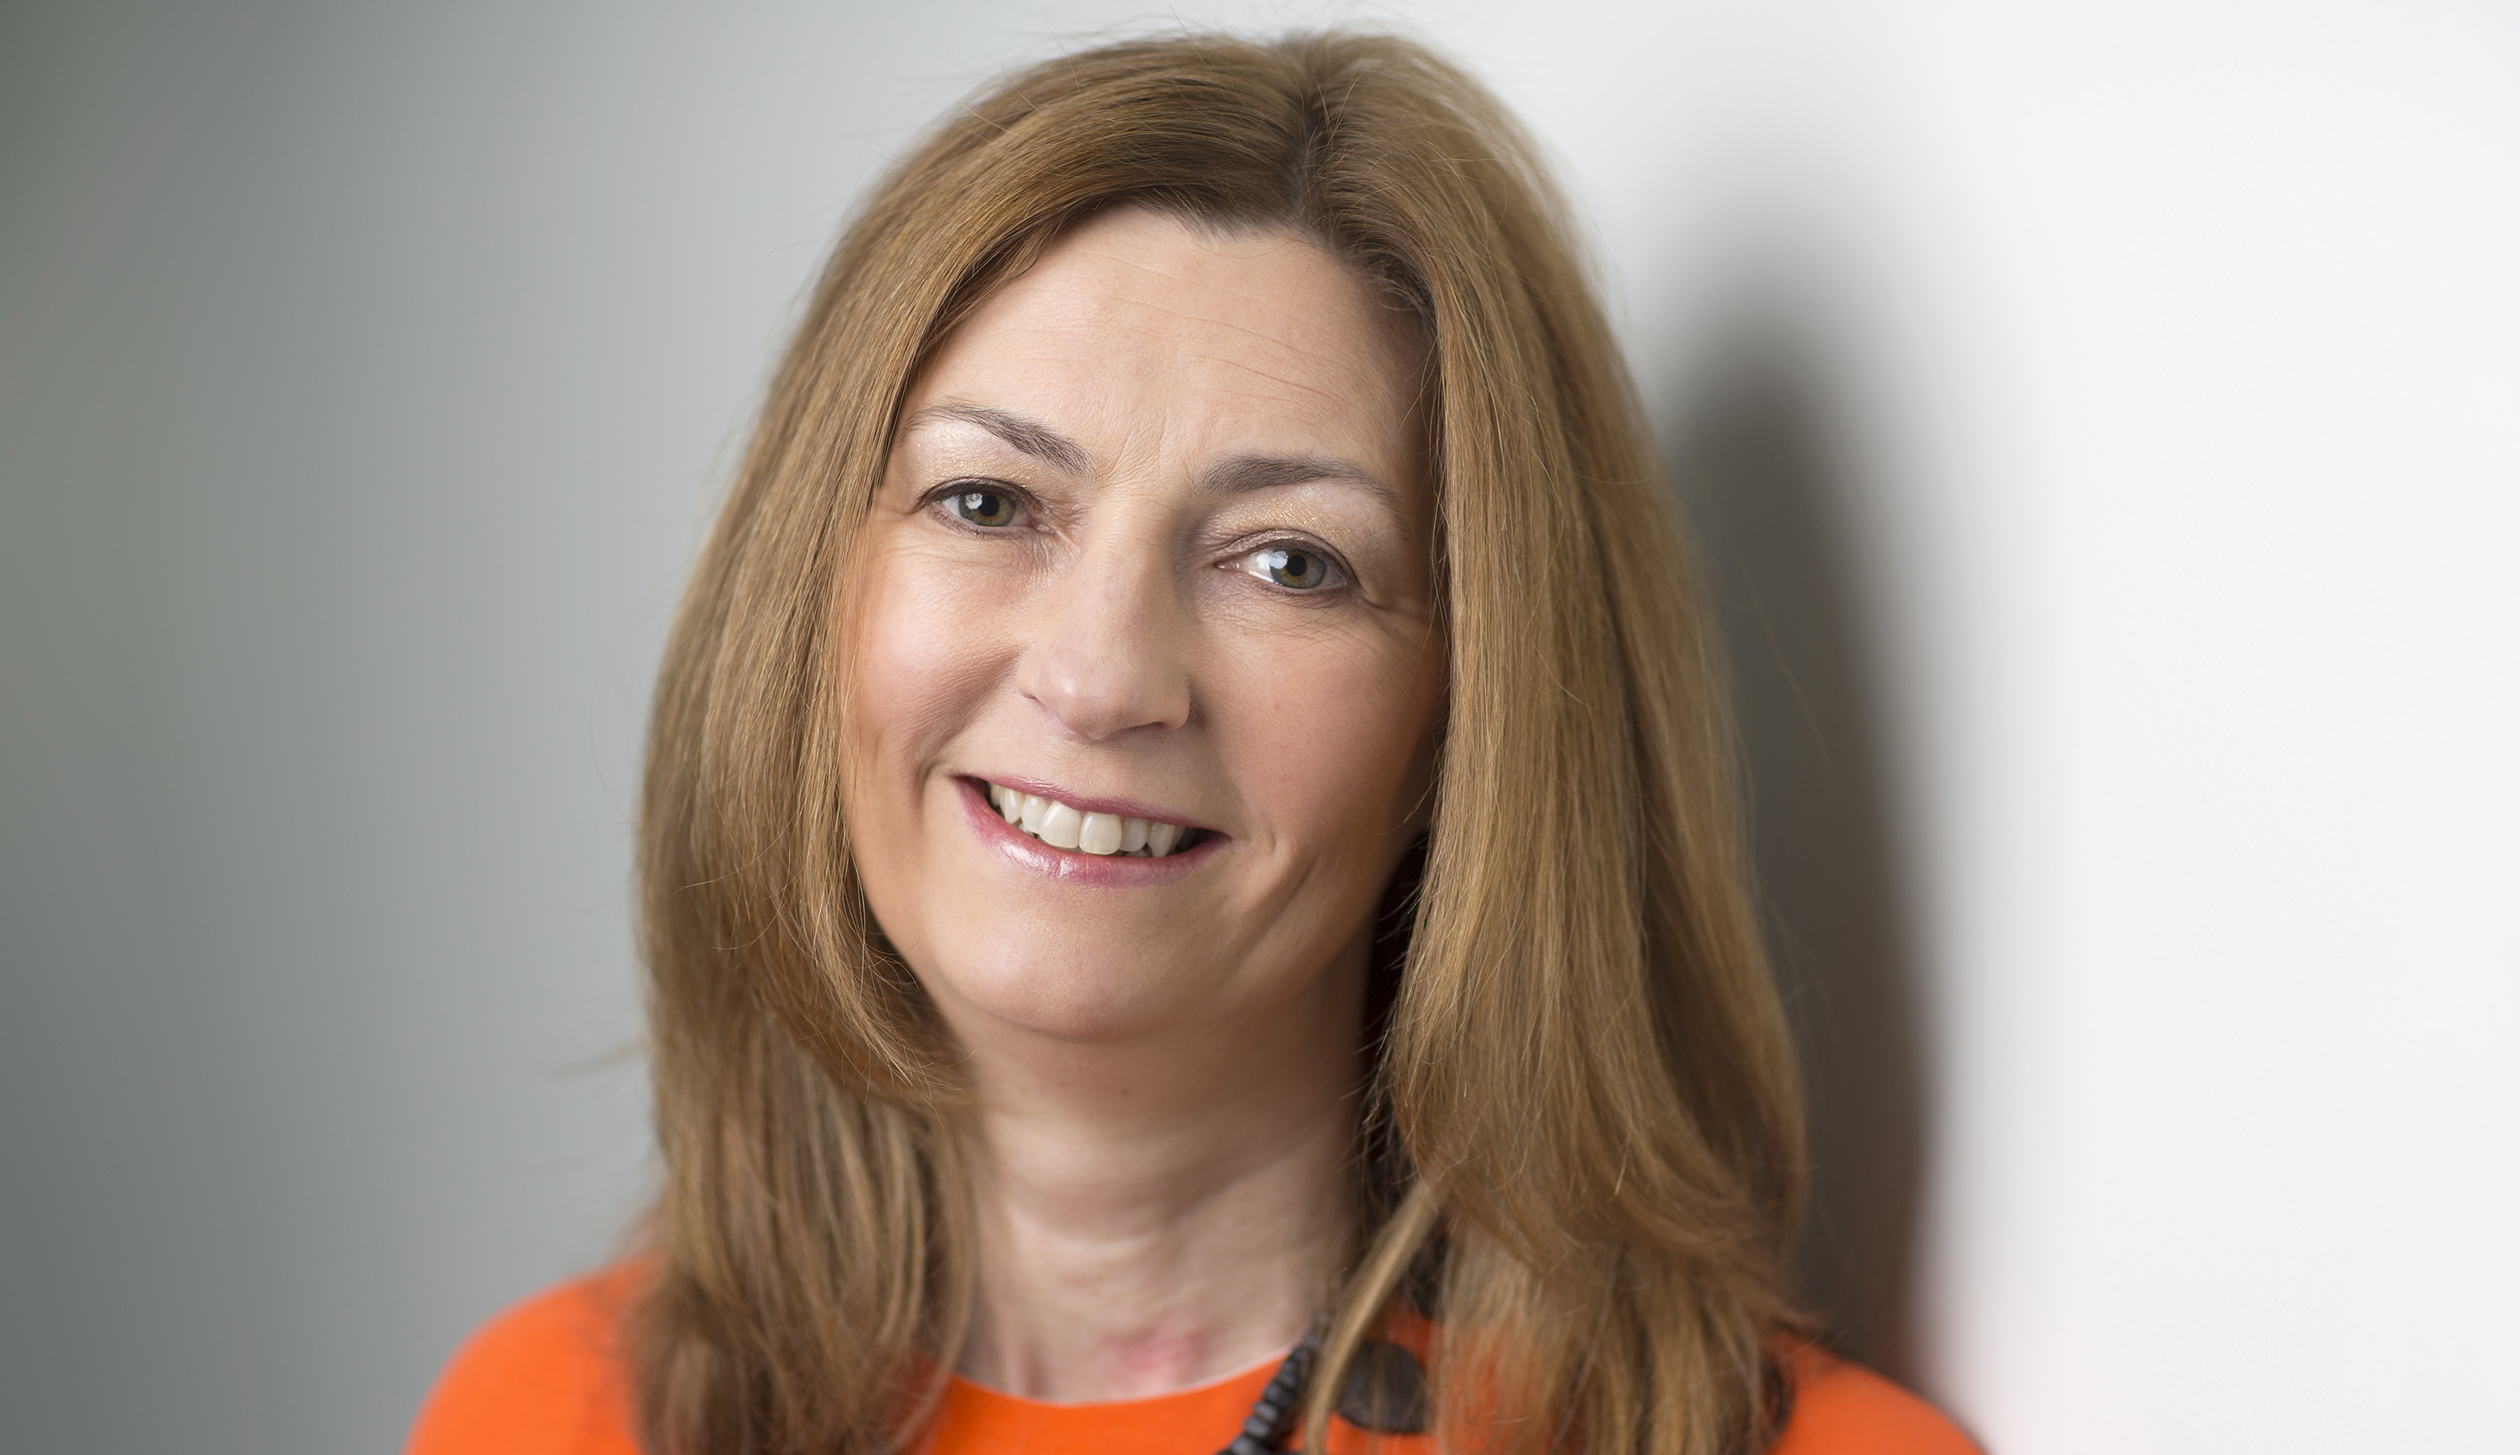 Aberdeen Asset Management Plc Chief Investment Officer Anne Richards Interview